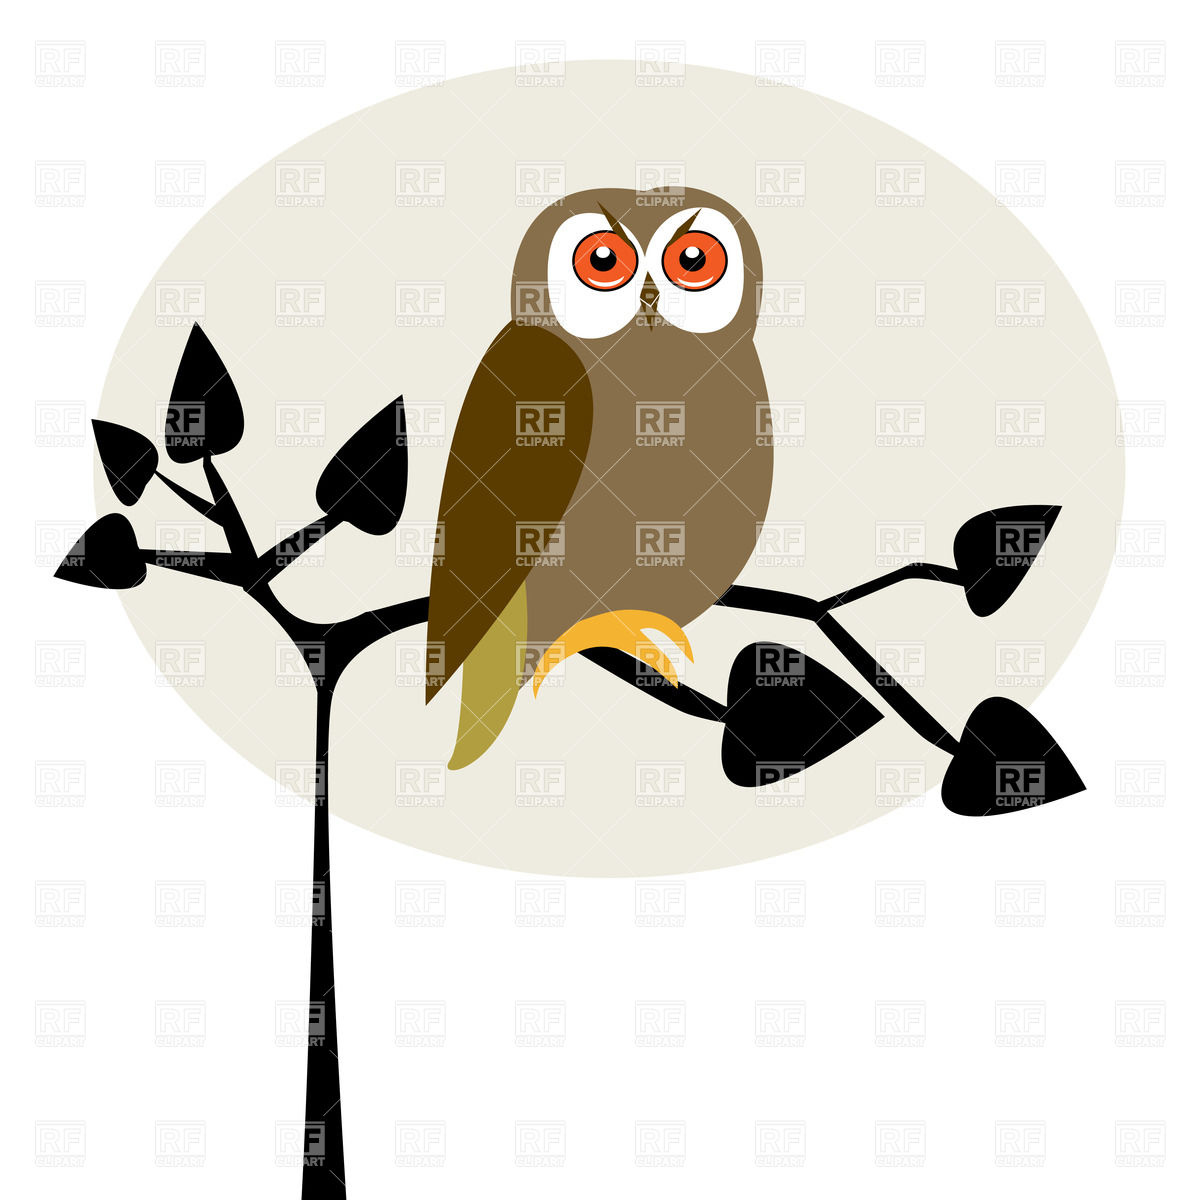 Funny Owl On Tree Download Royalty Free Vector Clipart  Eps